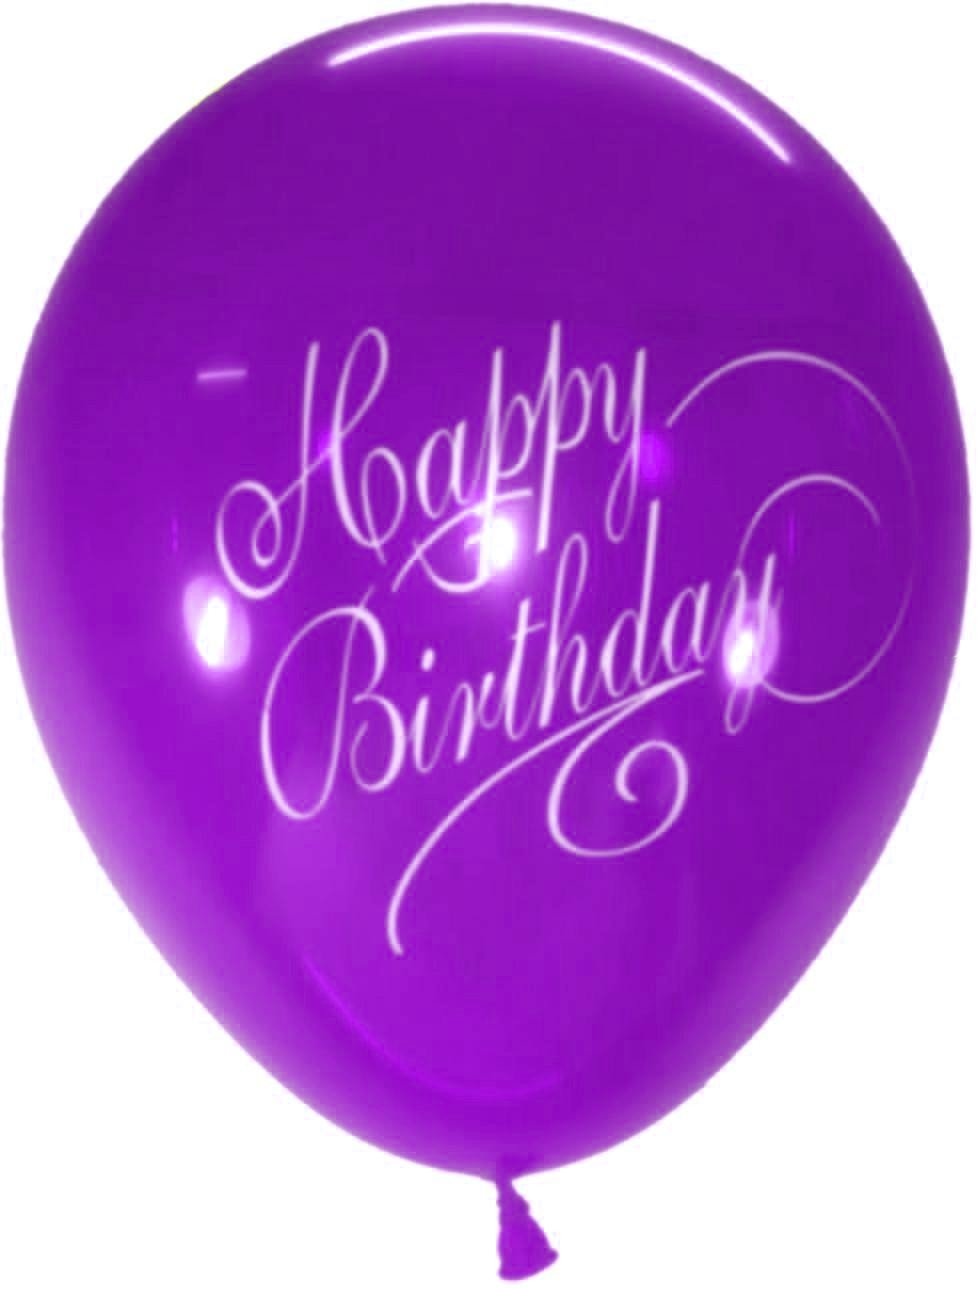 Stylish Happy B'day Latex Balloons (Purple) - Pack of 5